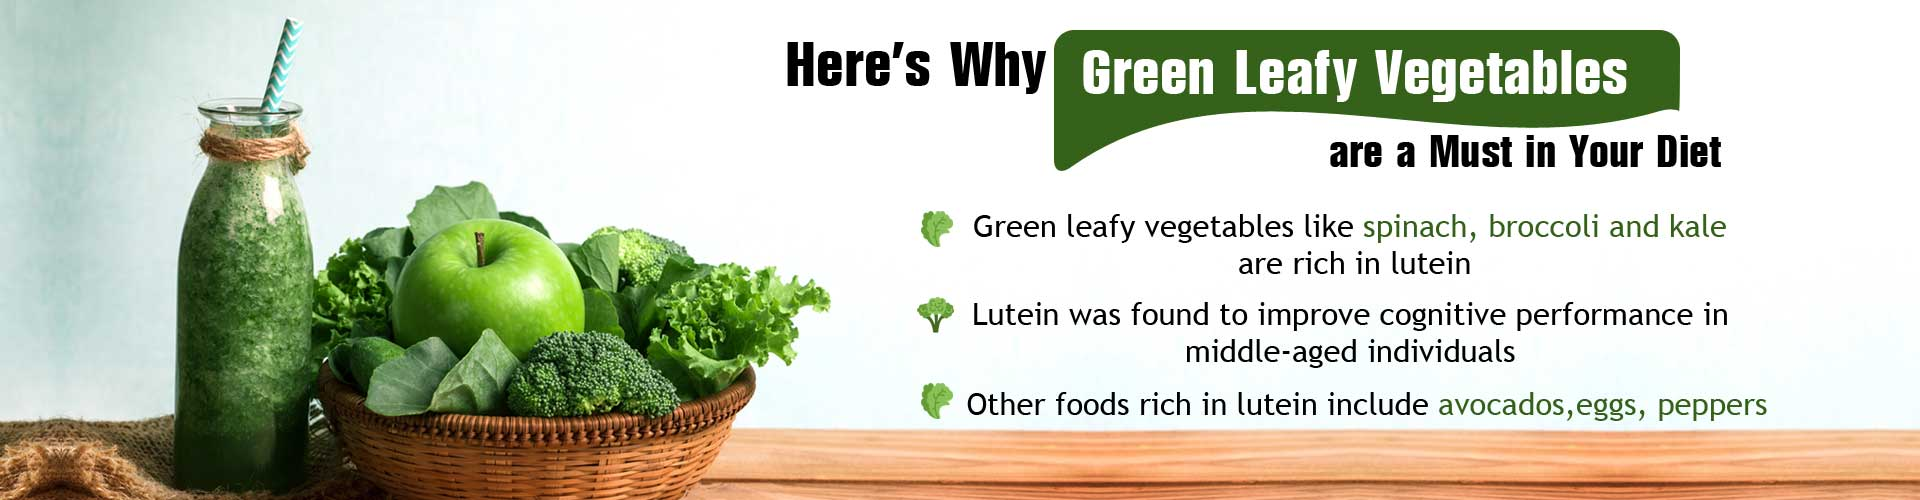 Here''s why green leafy vegetables are a must in your diet - Green leafy vegetables like spinach, broccoli and kale are rich in lutein - Lutein was found to improve cognitive performance in middle-aged individuals - Other foods rich in lutein include avocados, eggs, peppers